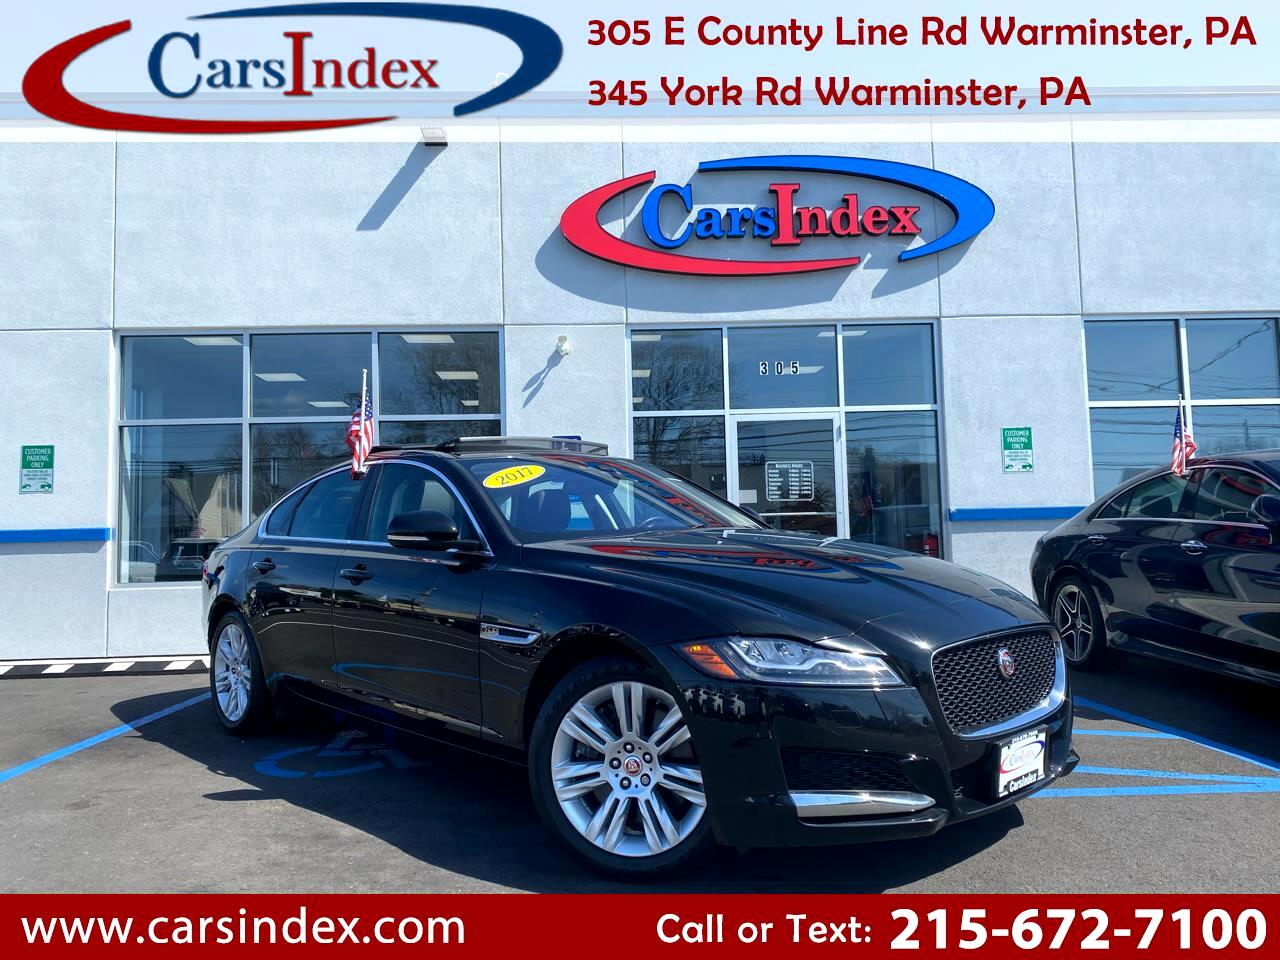 Used Jaguar Xf Warminster Pa